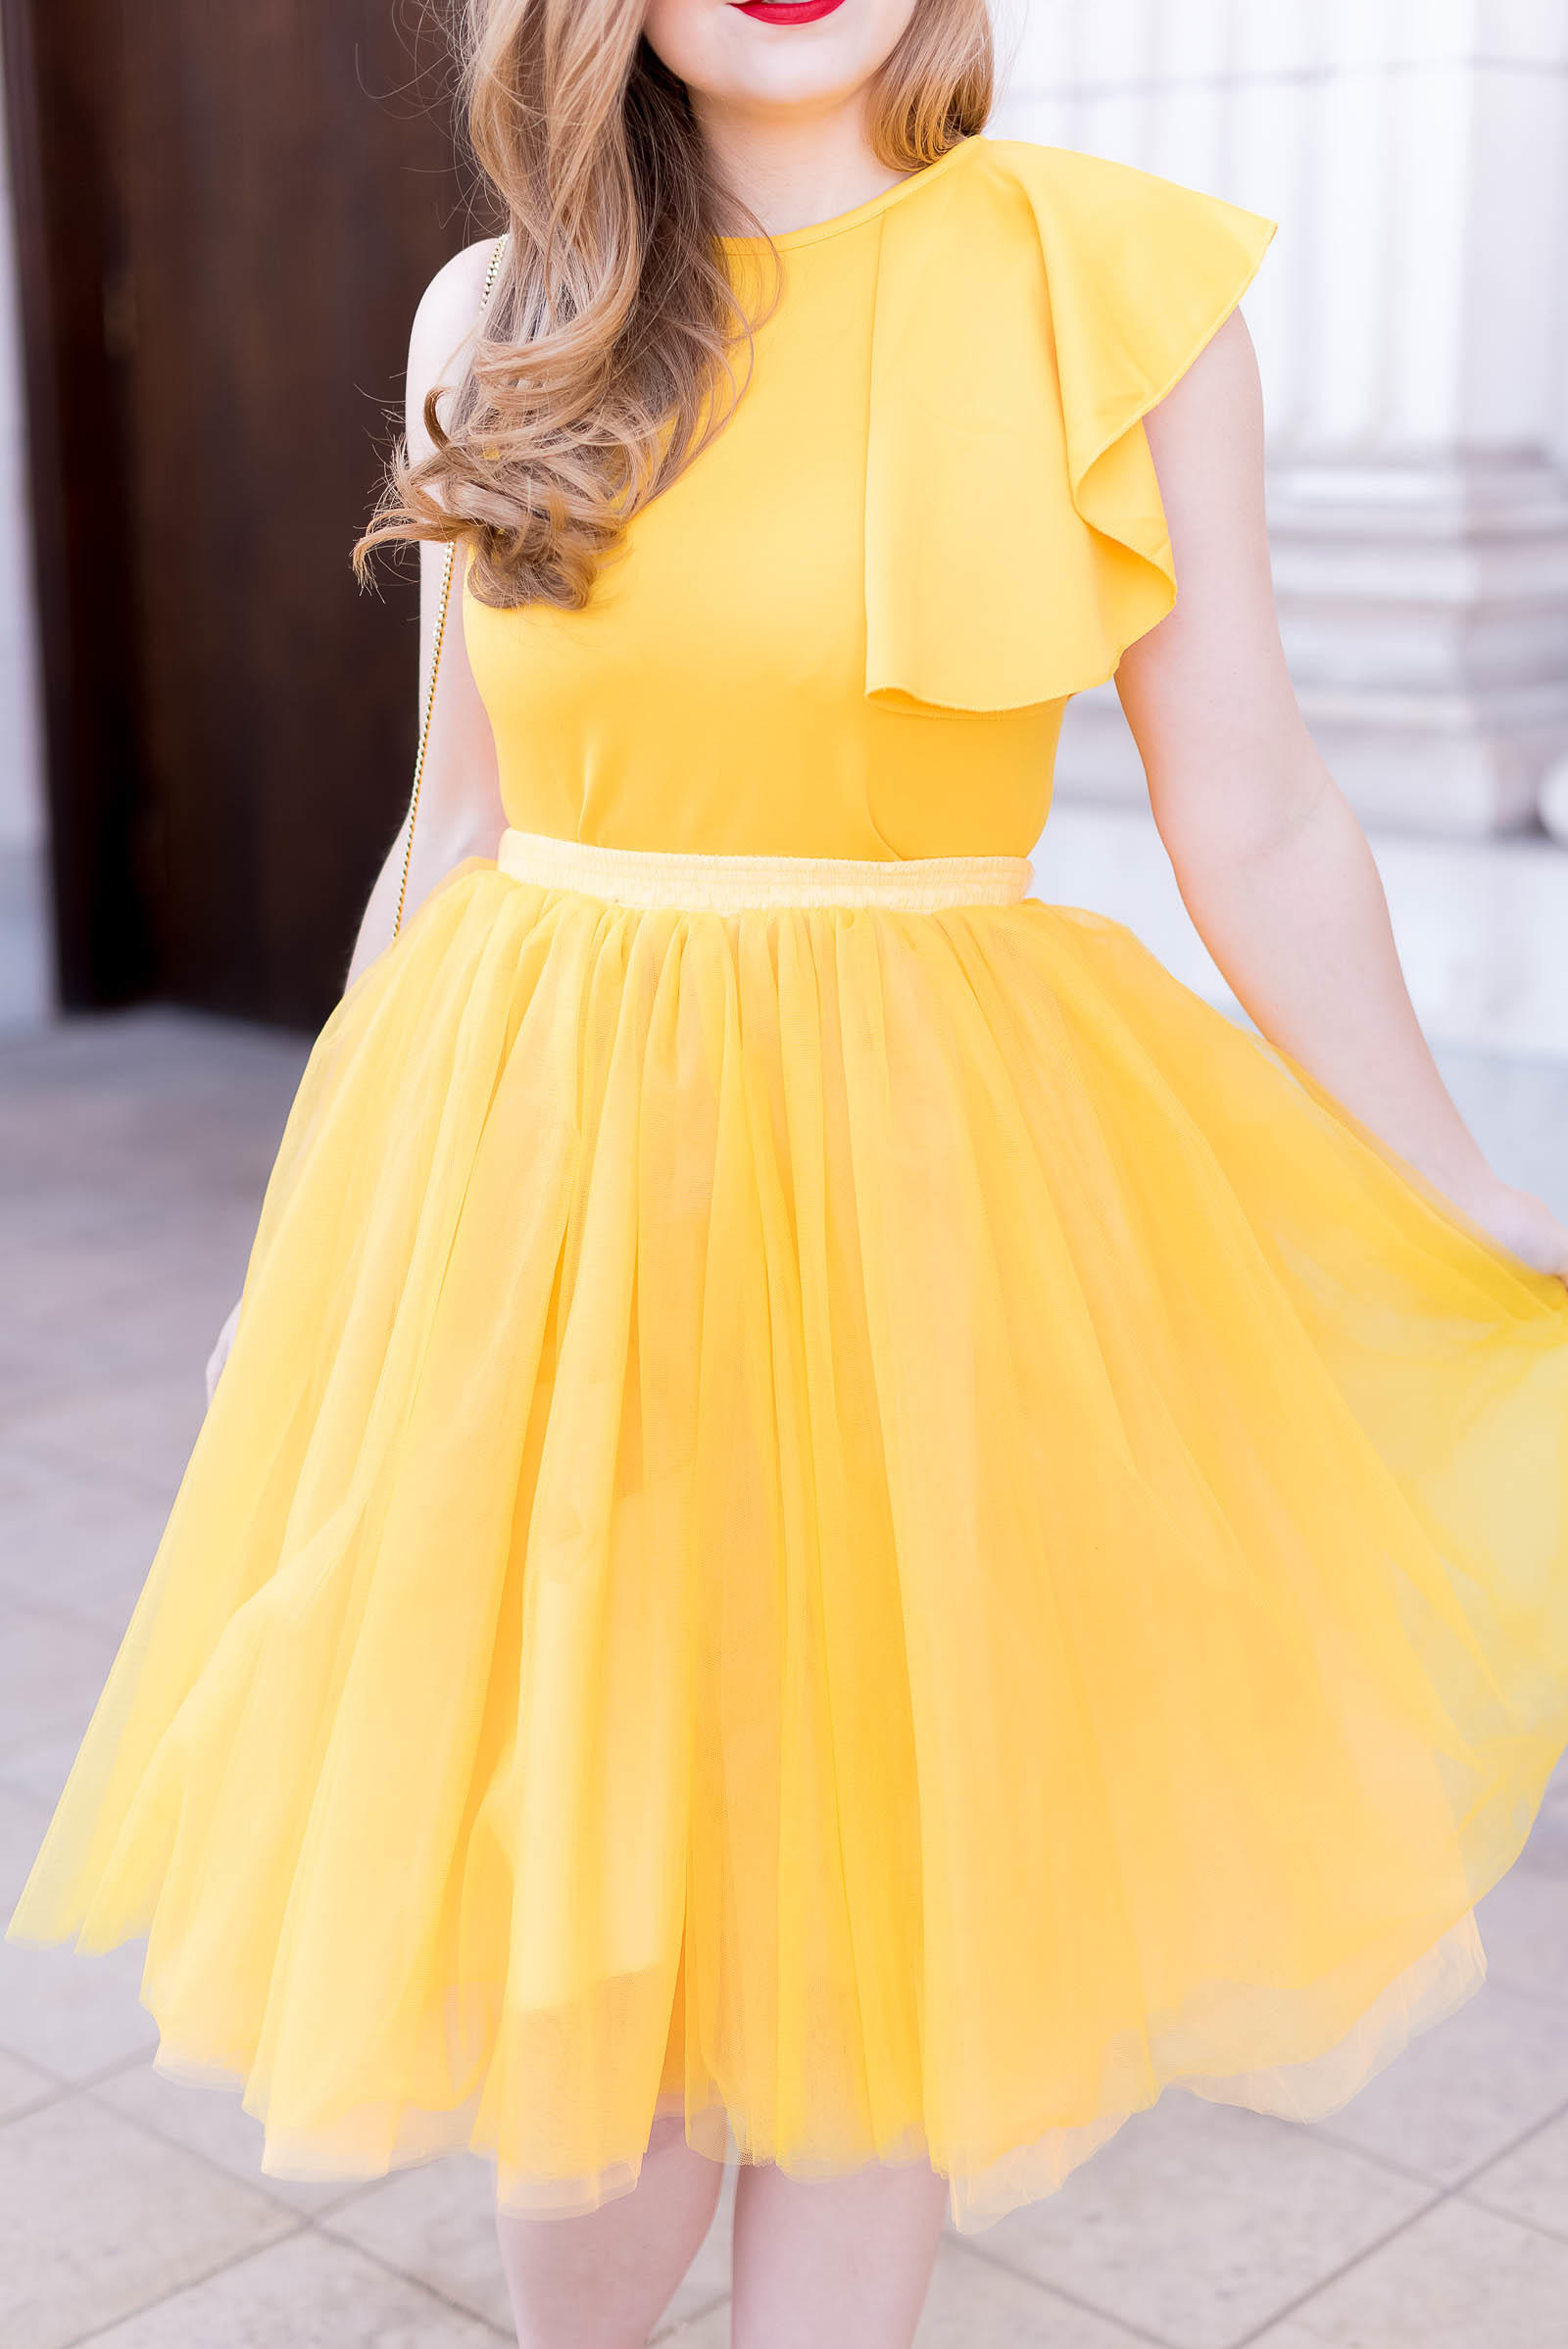 Beauty and the Beast Inspired Outfit Costume